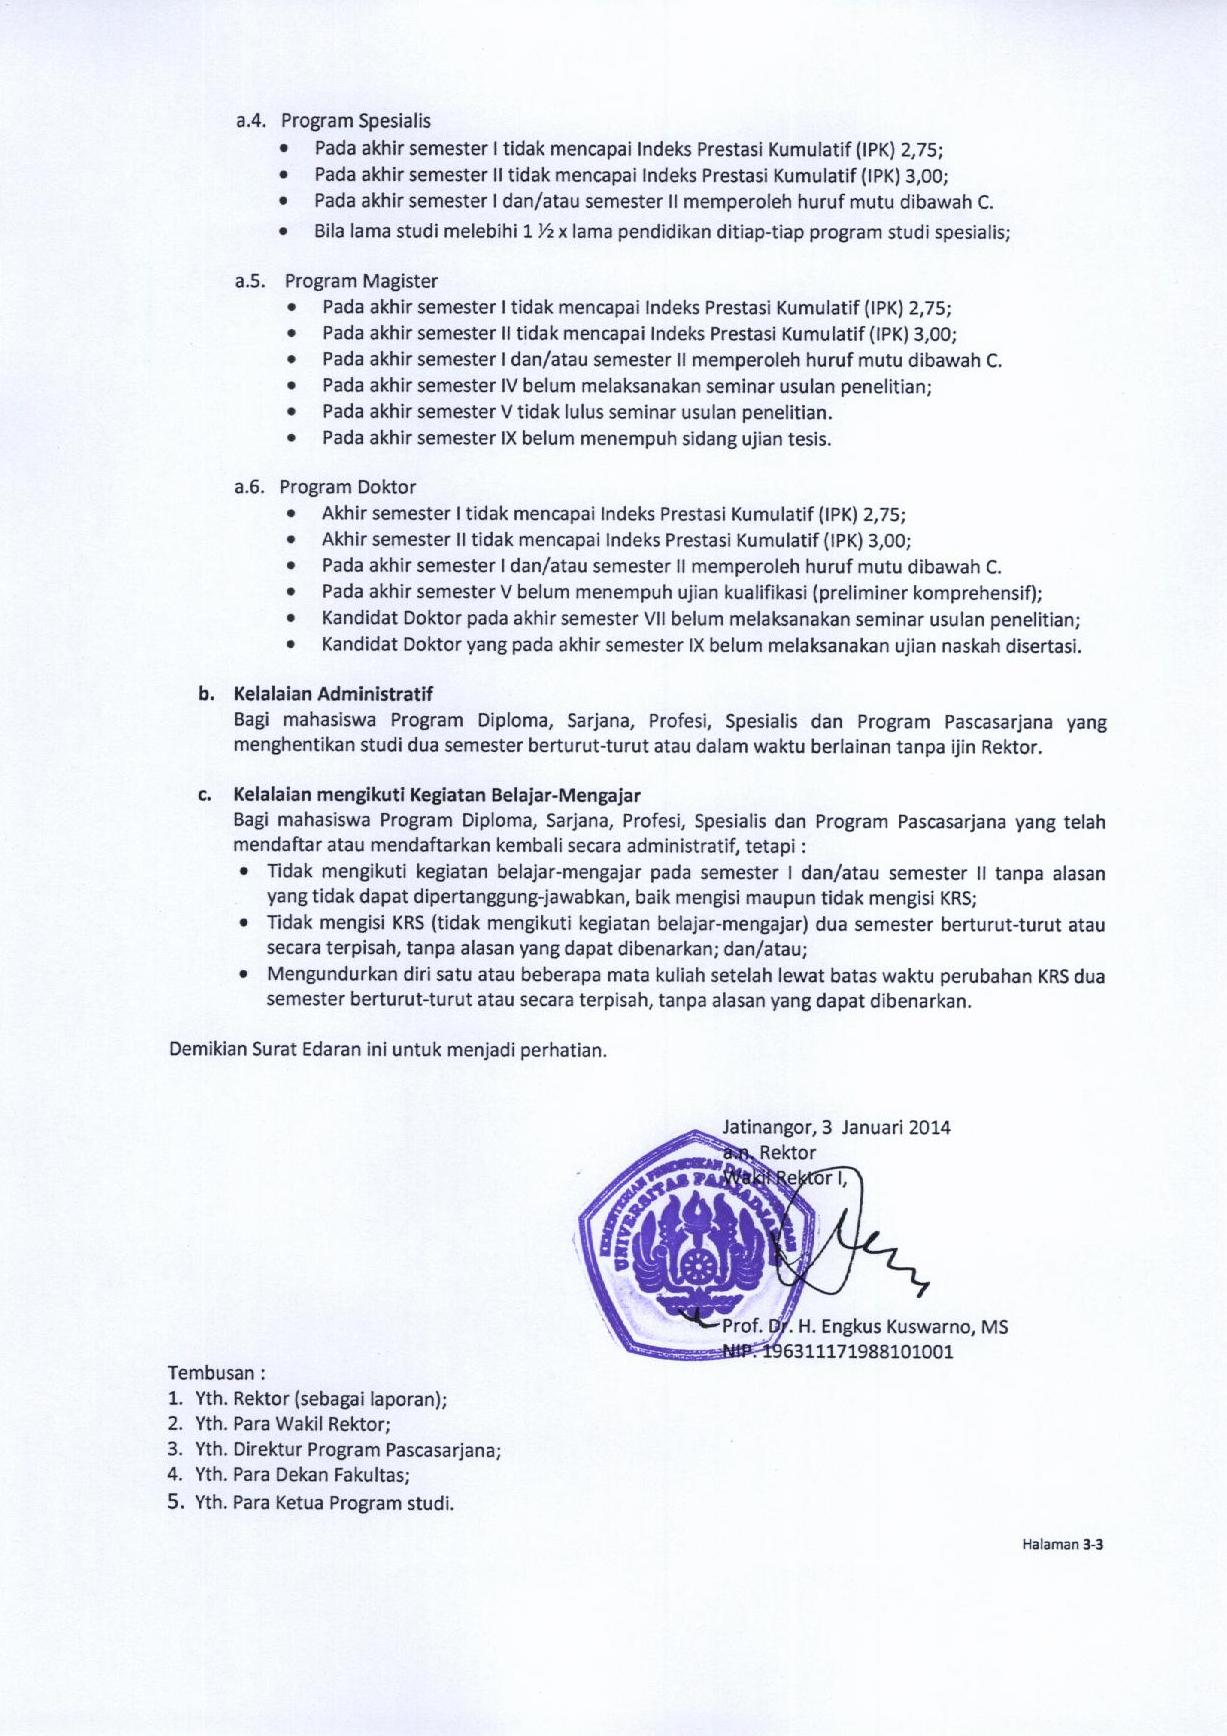 Information On Herregistration Faculty Of Economics And Business